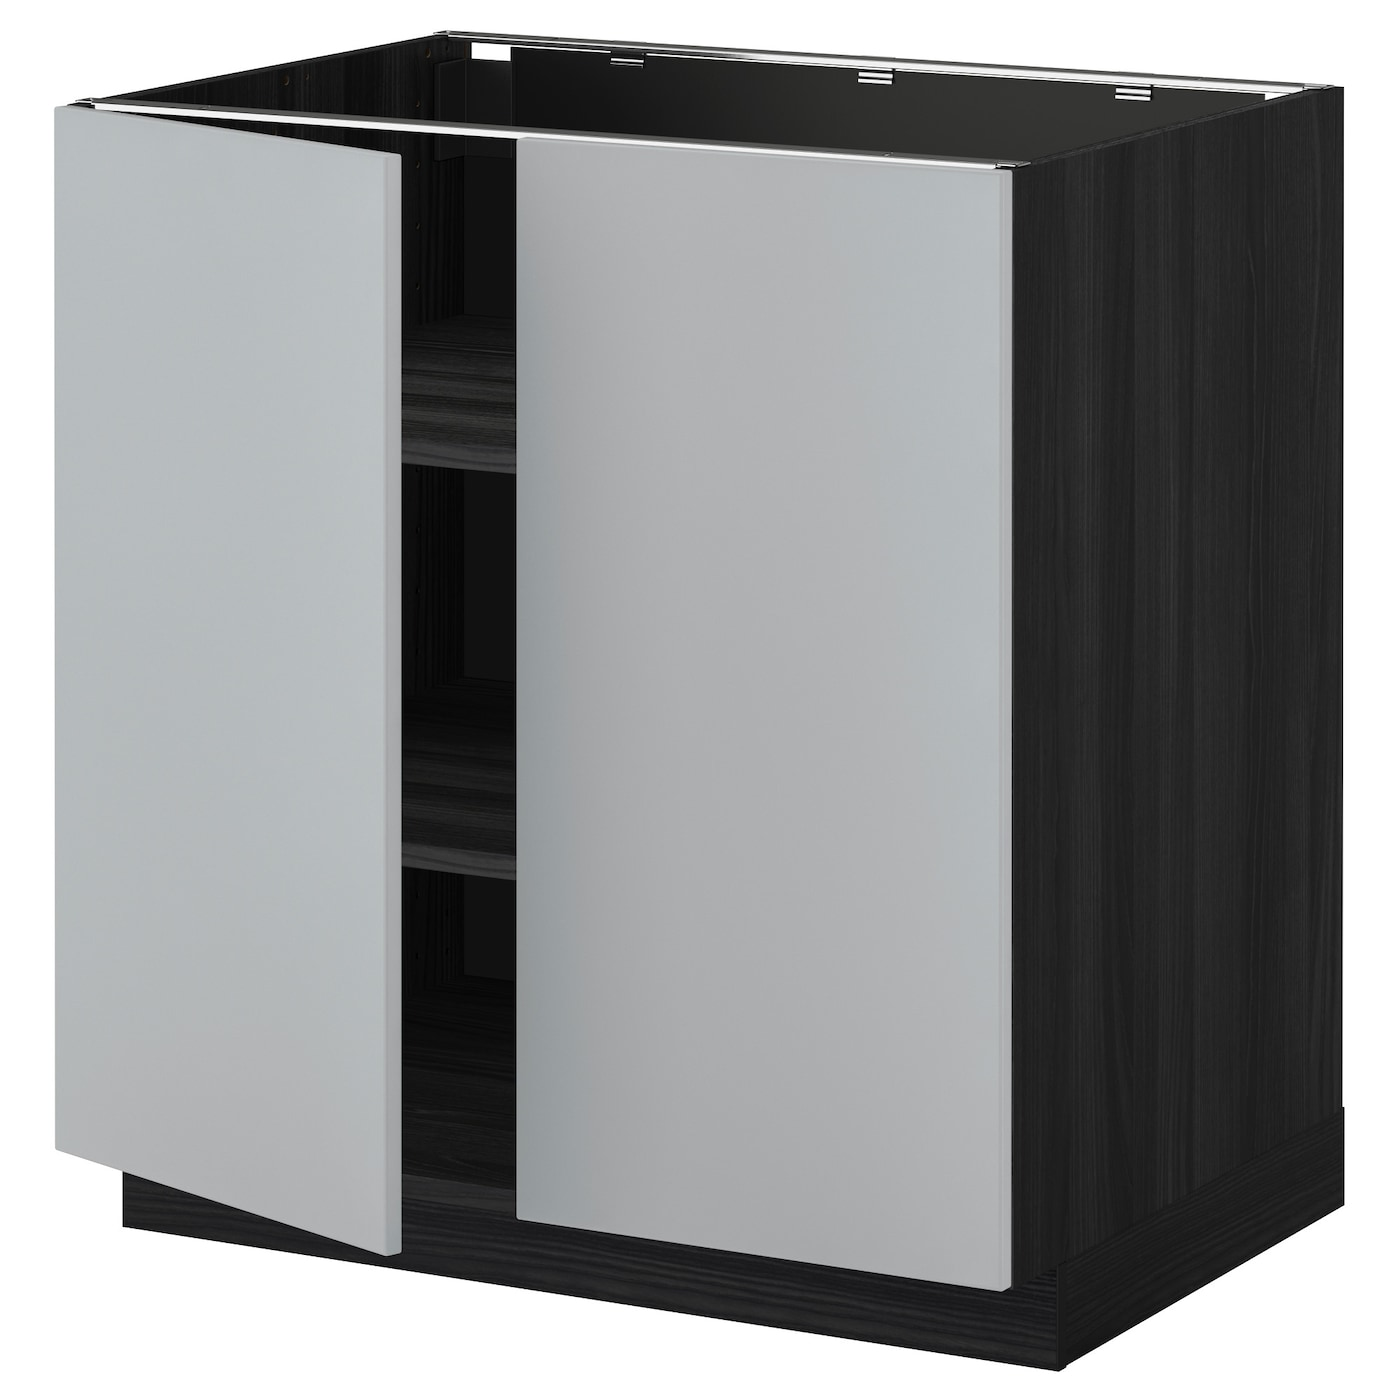 Metod base cabinet with shelves 2 doors black veddinge for Black cabinet with doors